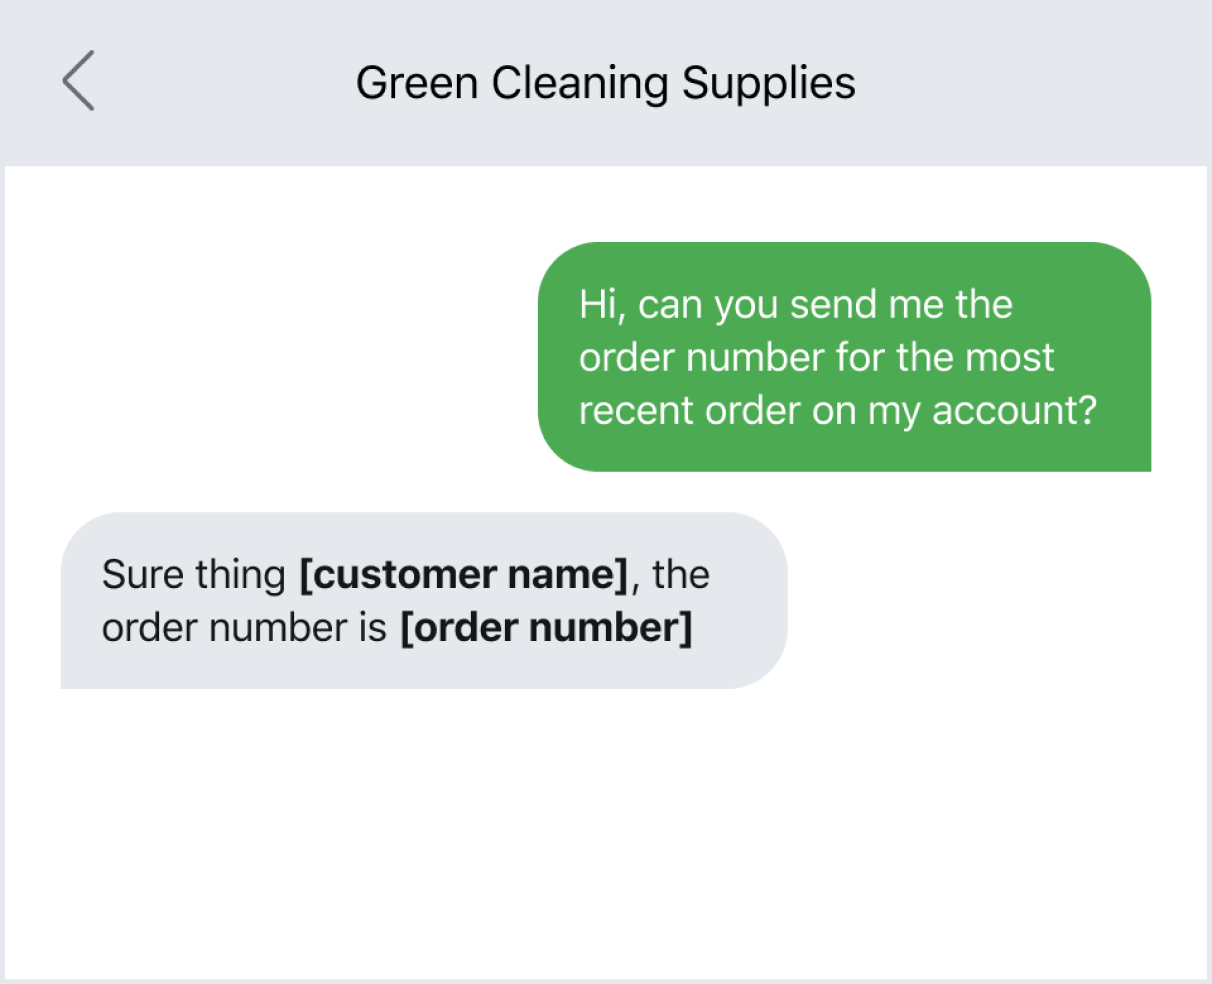 Customer service SMS template for requesting an order number